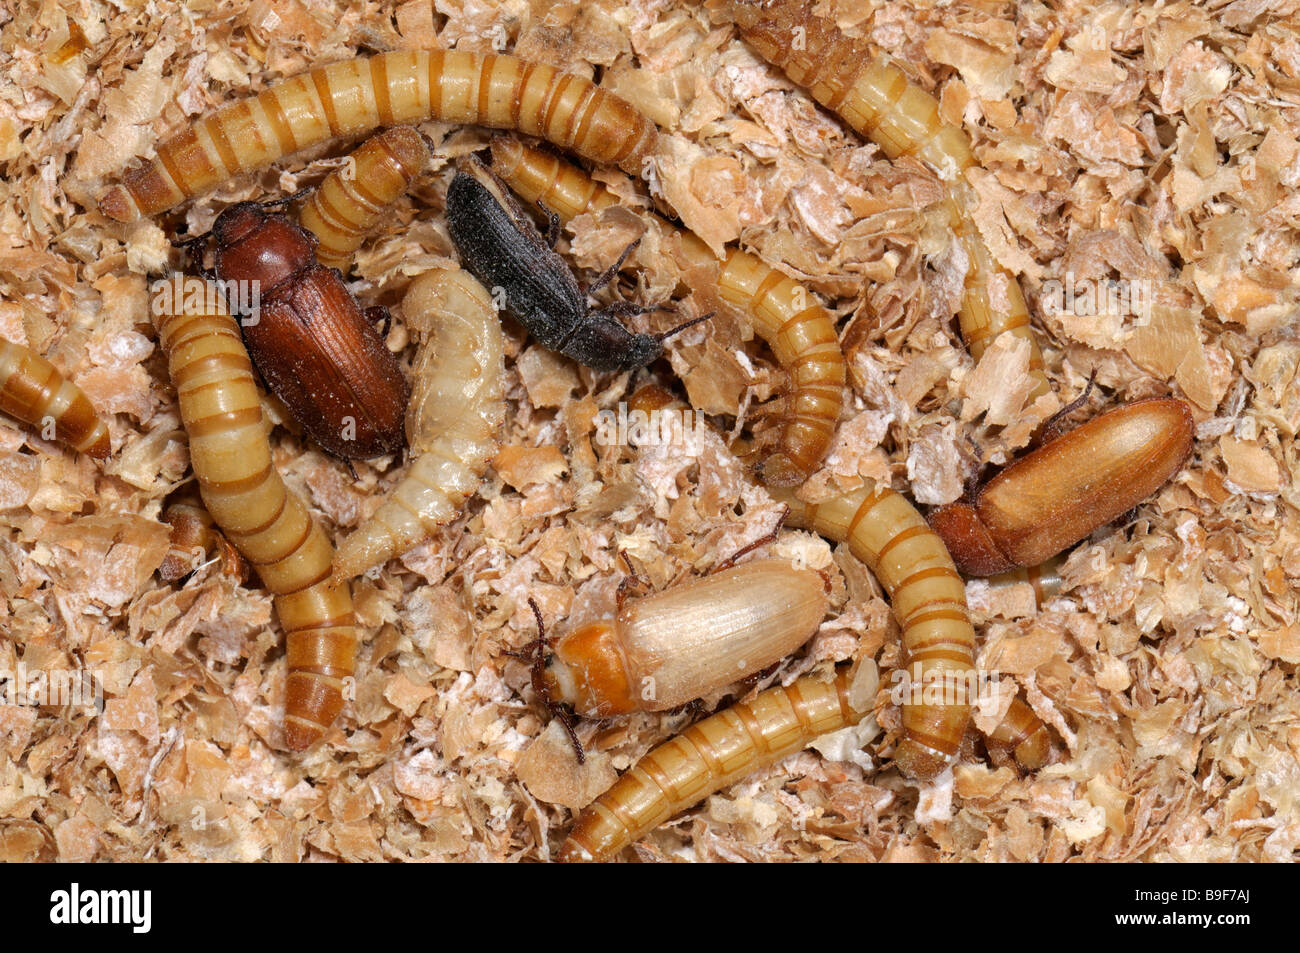 tenebrio molitor research paper Mealworm lab report the darkling beetle tenebrio molitor see also essay on government writing a college research paper simple living high thinking essay.